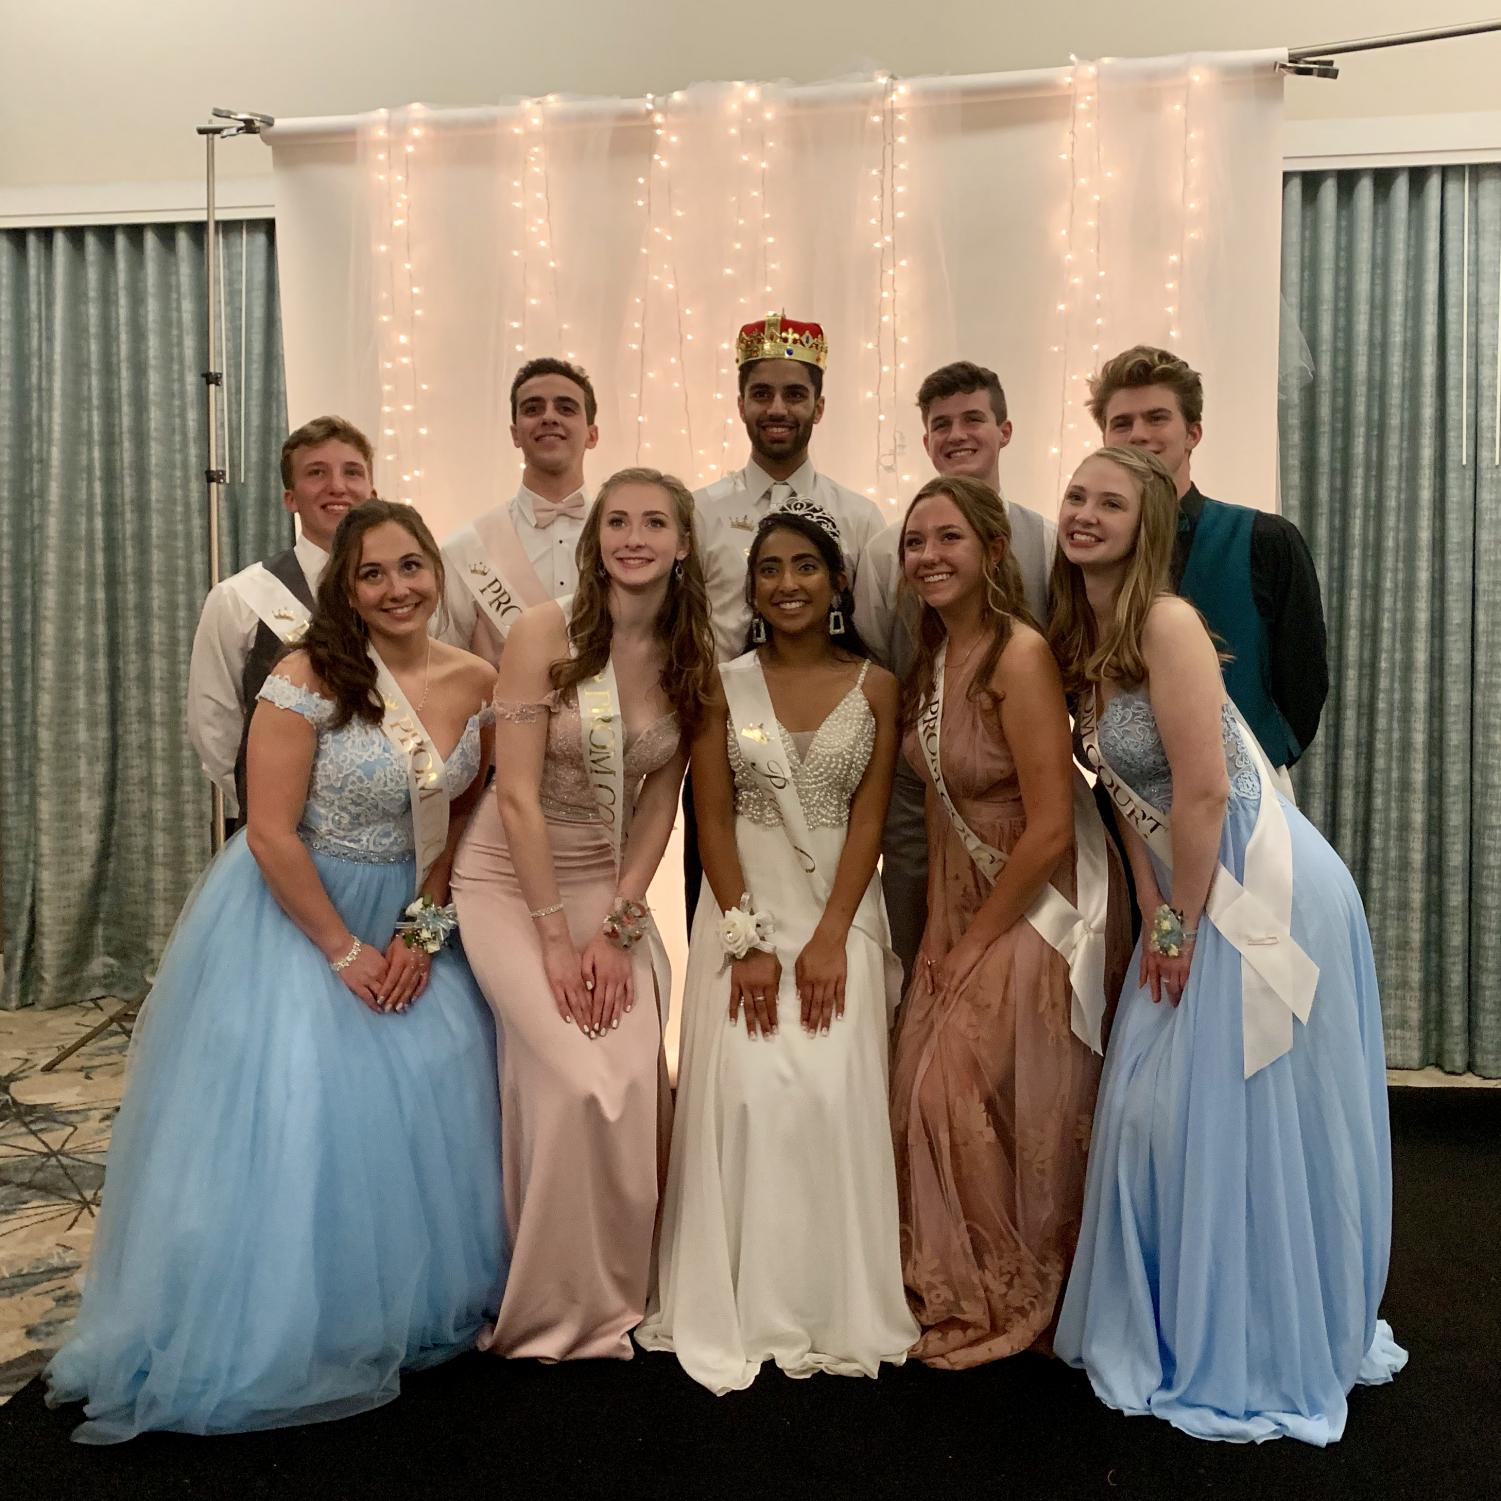 """Pictured is the class of 2019's Prom King and Queen. """"Thinking about high school 10 years from now, I'll definitely think about the time when I won prom king,"""" says Miglani. The both of them are very happy to have this honor."""